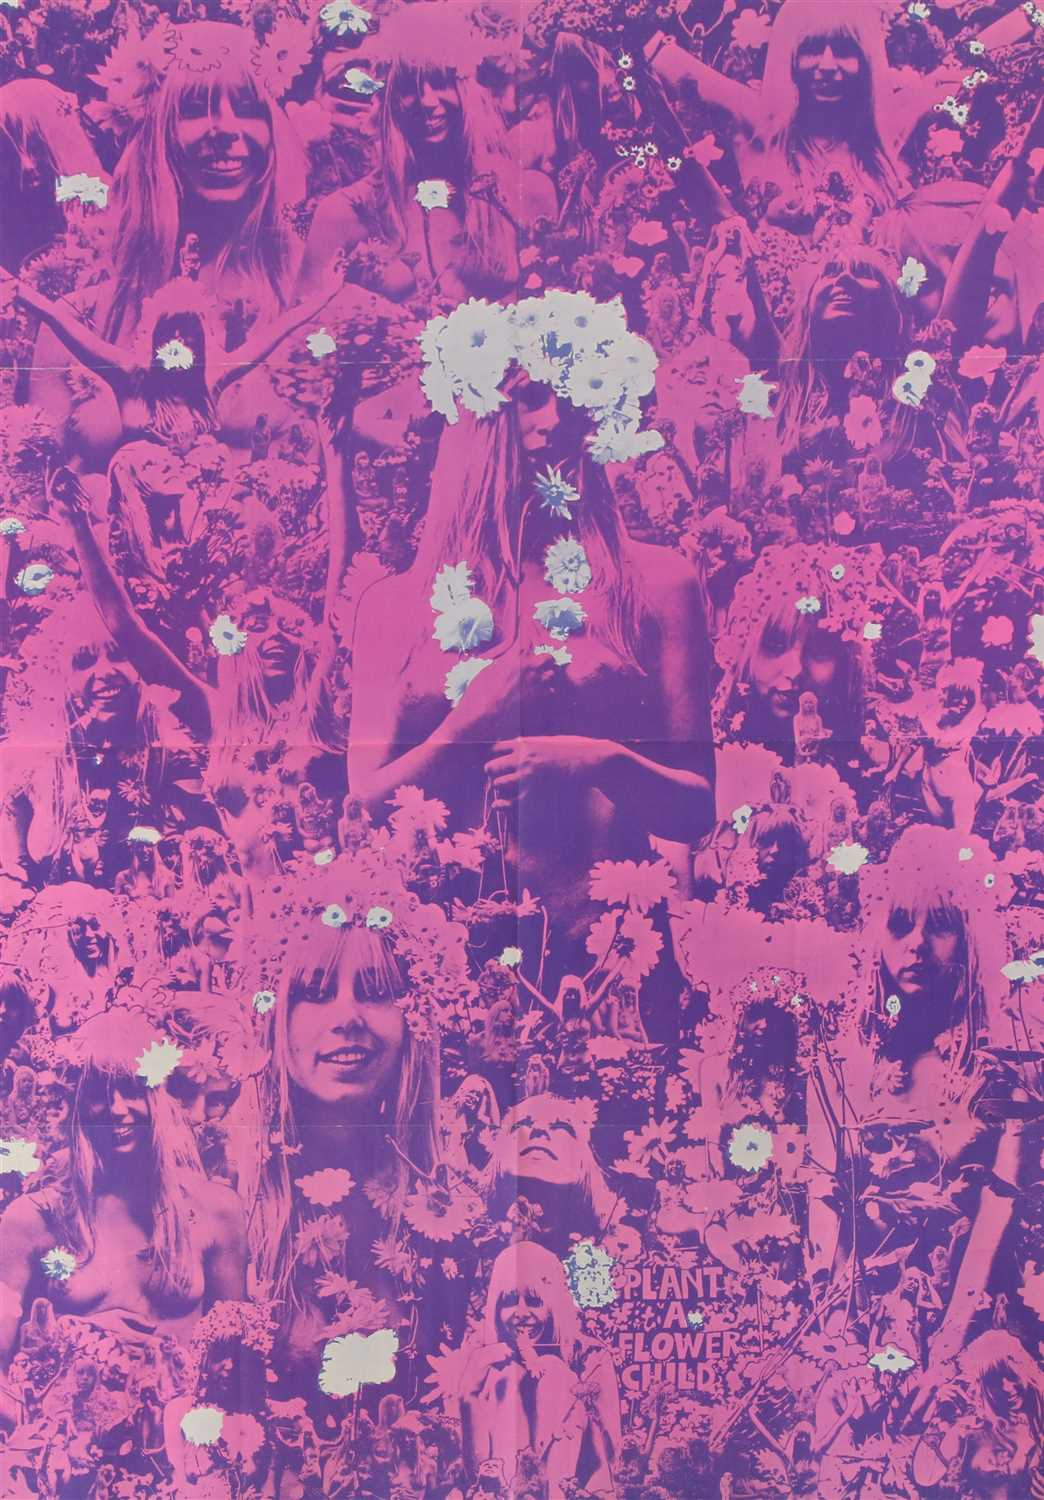 Lot 30 - A RARE PINK 'PLANT A FLOWER CHILD' 1967 POSTER,